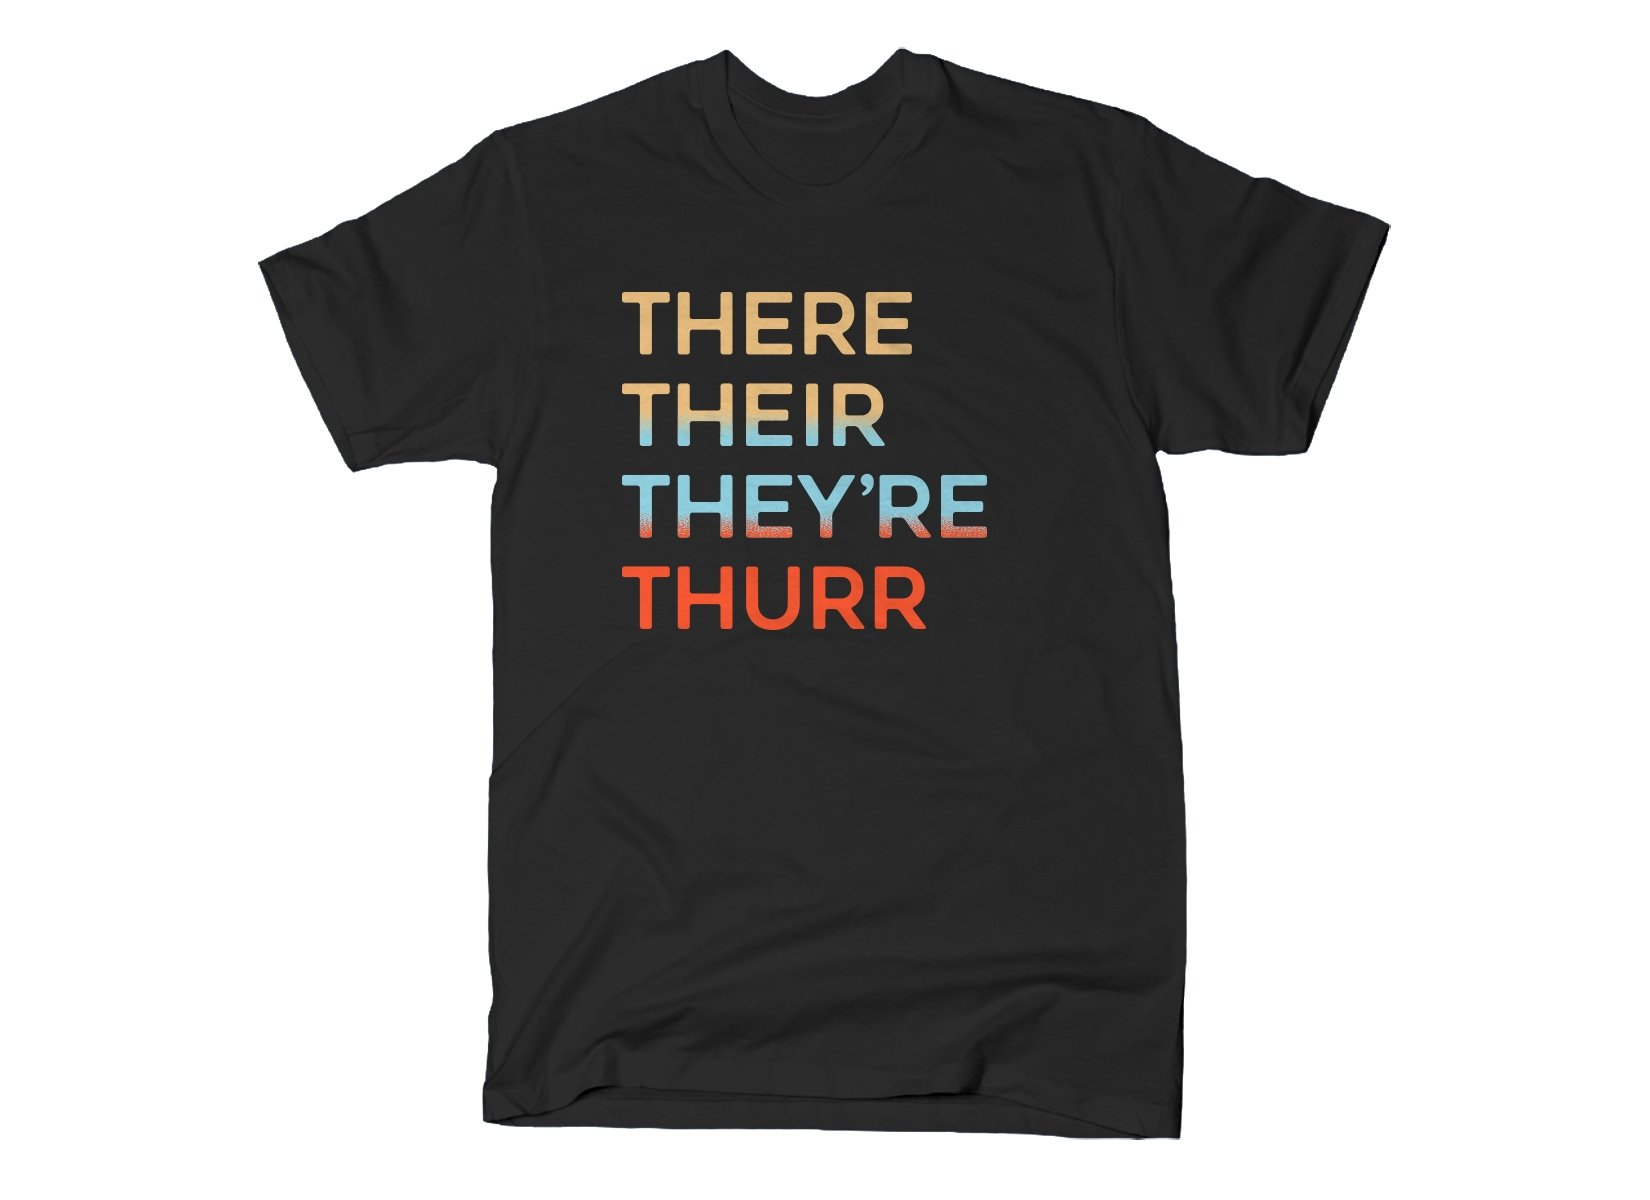 There Their They're Thurr on Mens T-Shirt